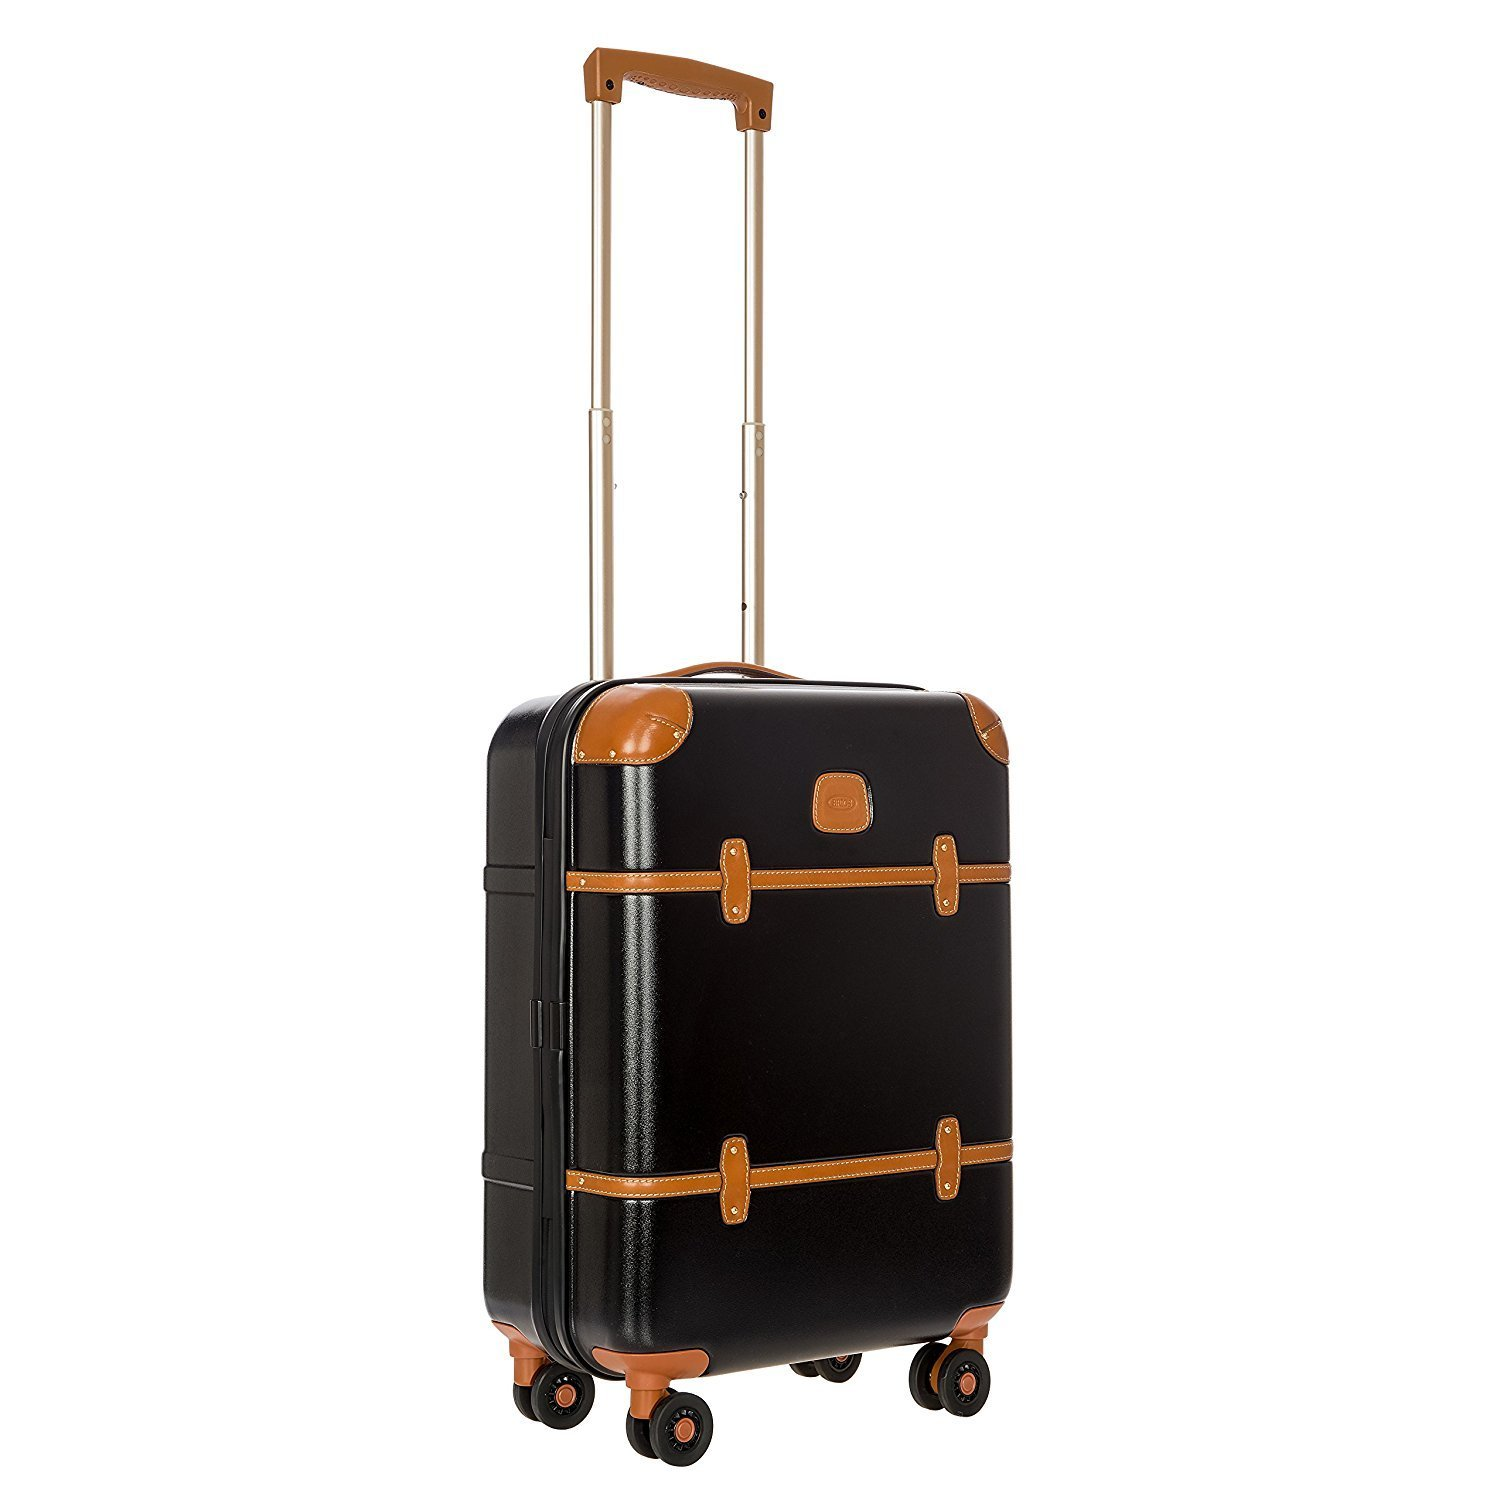 Bric's Luggage Bellagio Ultra Light 21 Inch Carry On Spinner Trunk high-quality